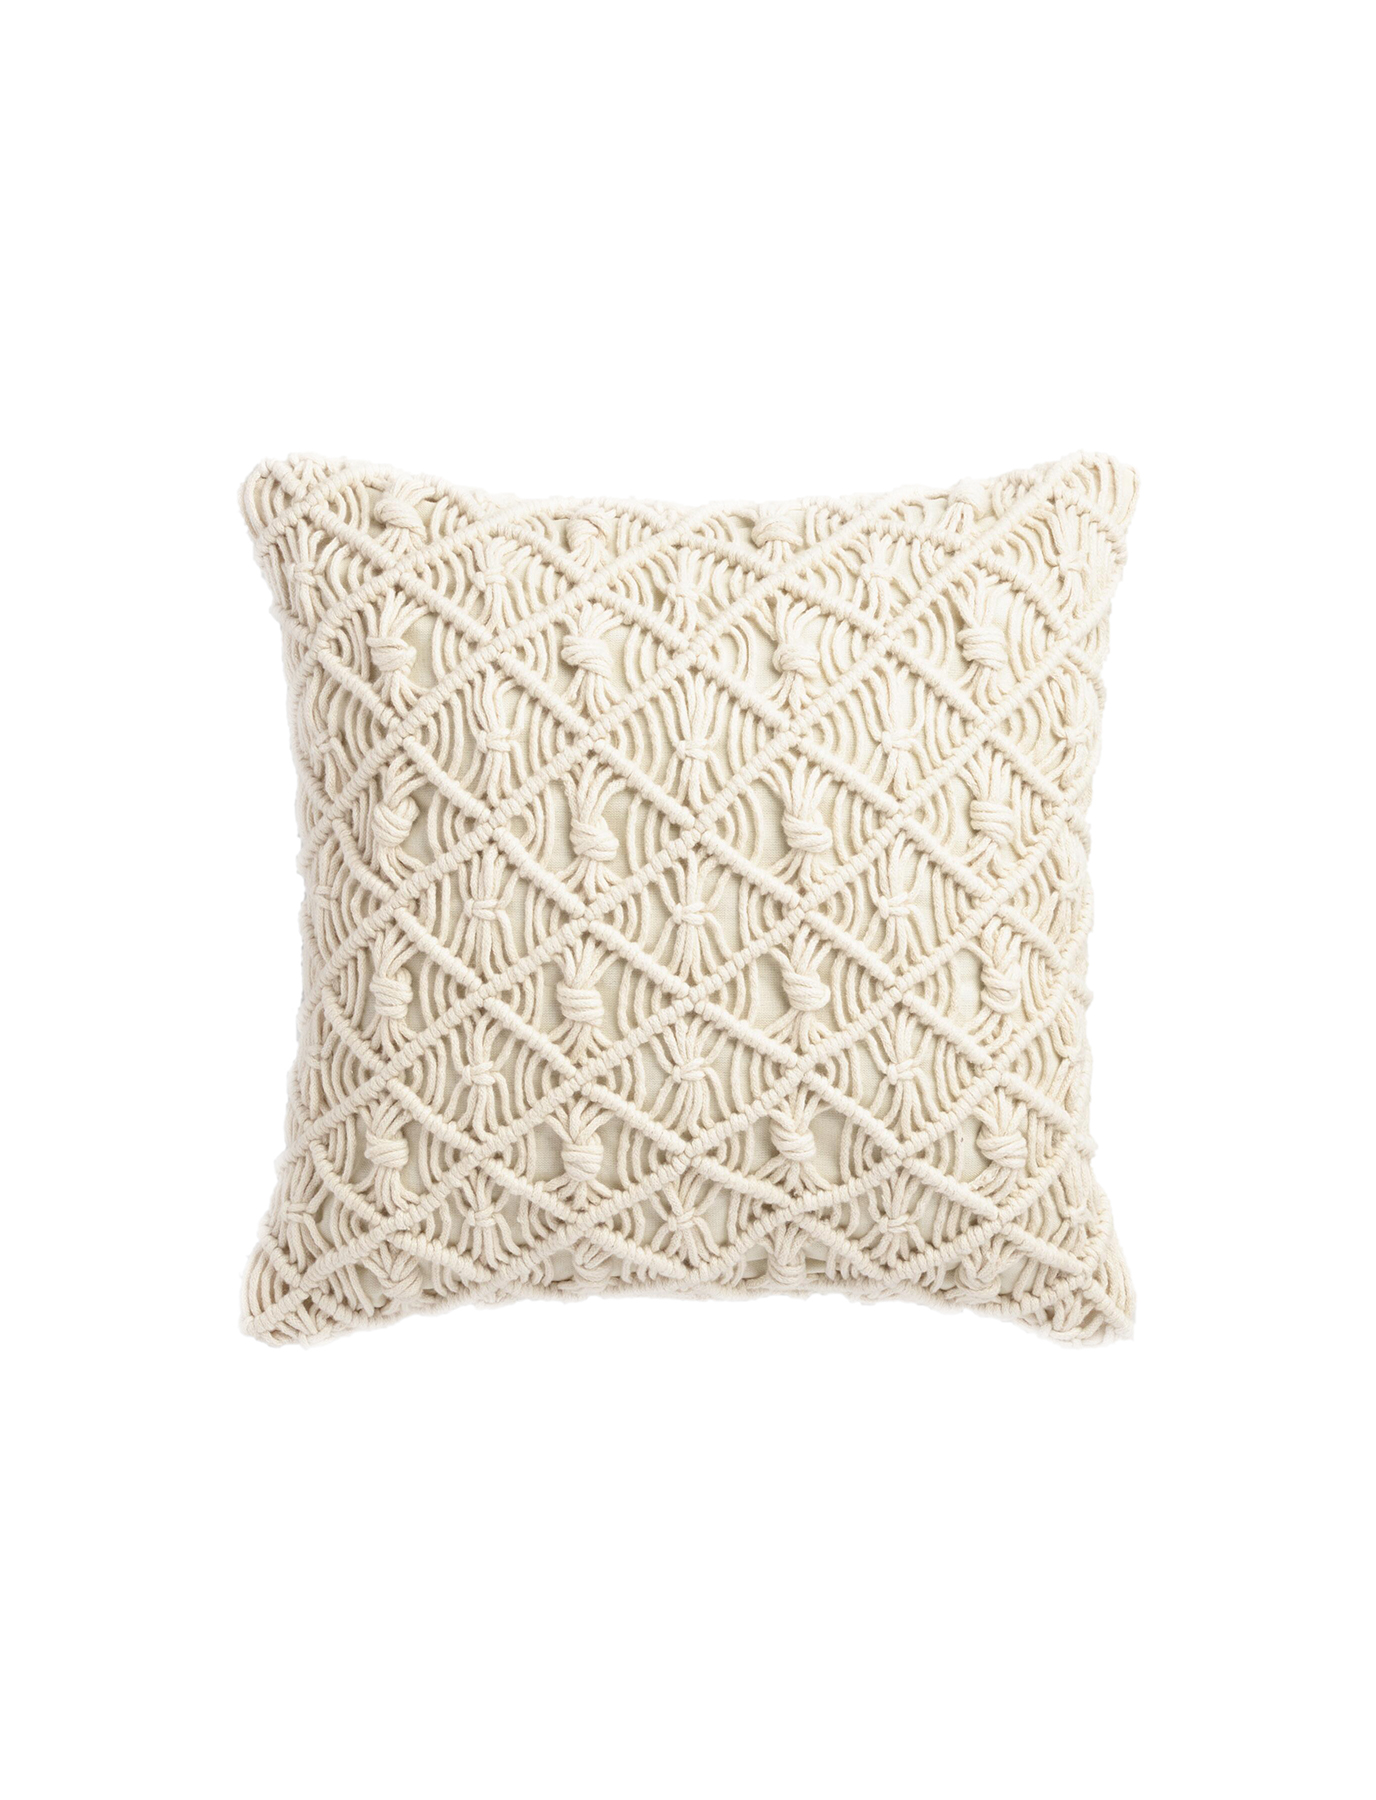 Jali Macramé Indoor-Outdoor Throw Pillow